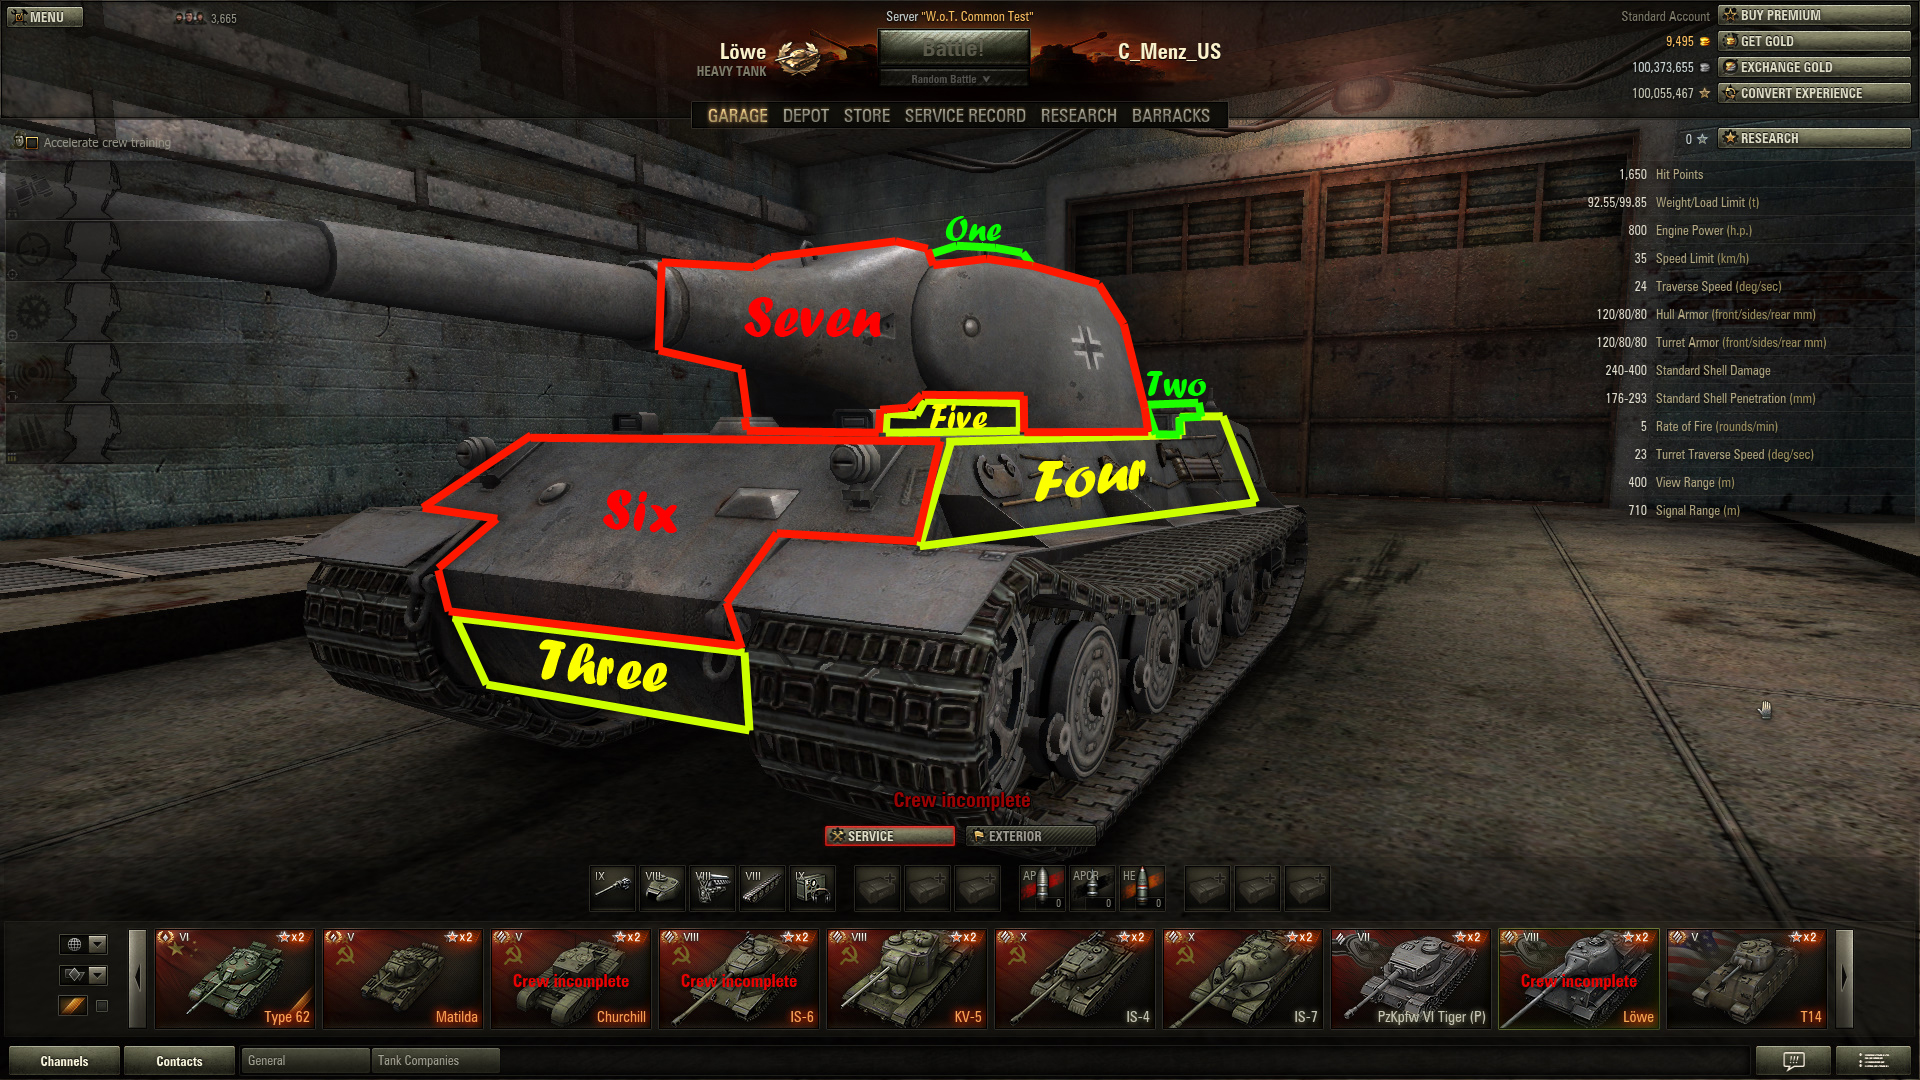 how to know the range of a tank in wot